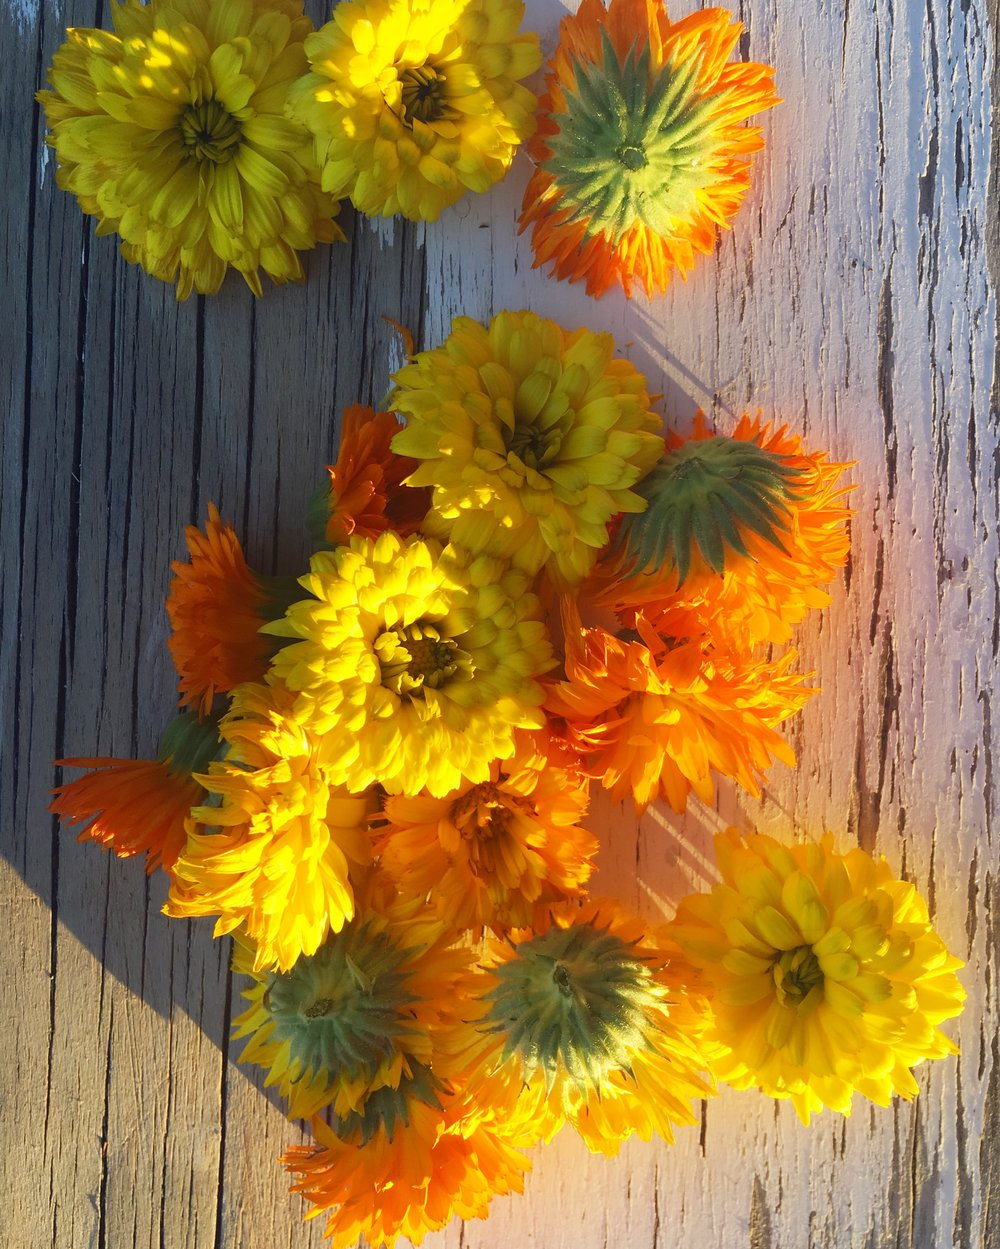 Calendula blossoms harvested from my garden last summer.